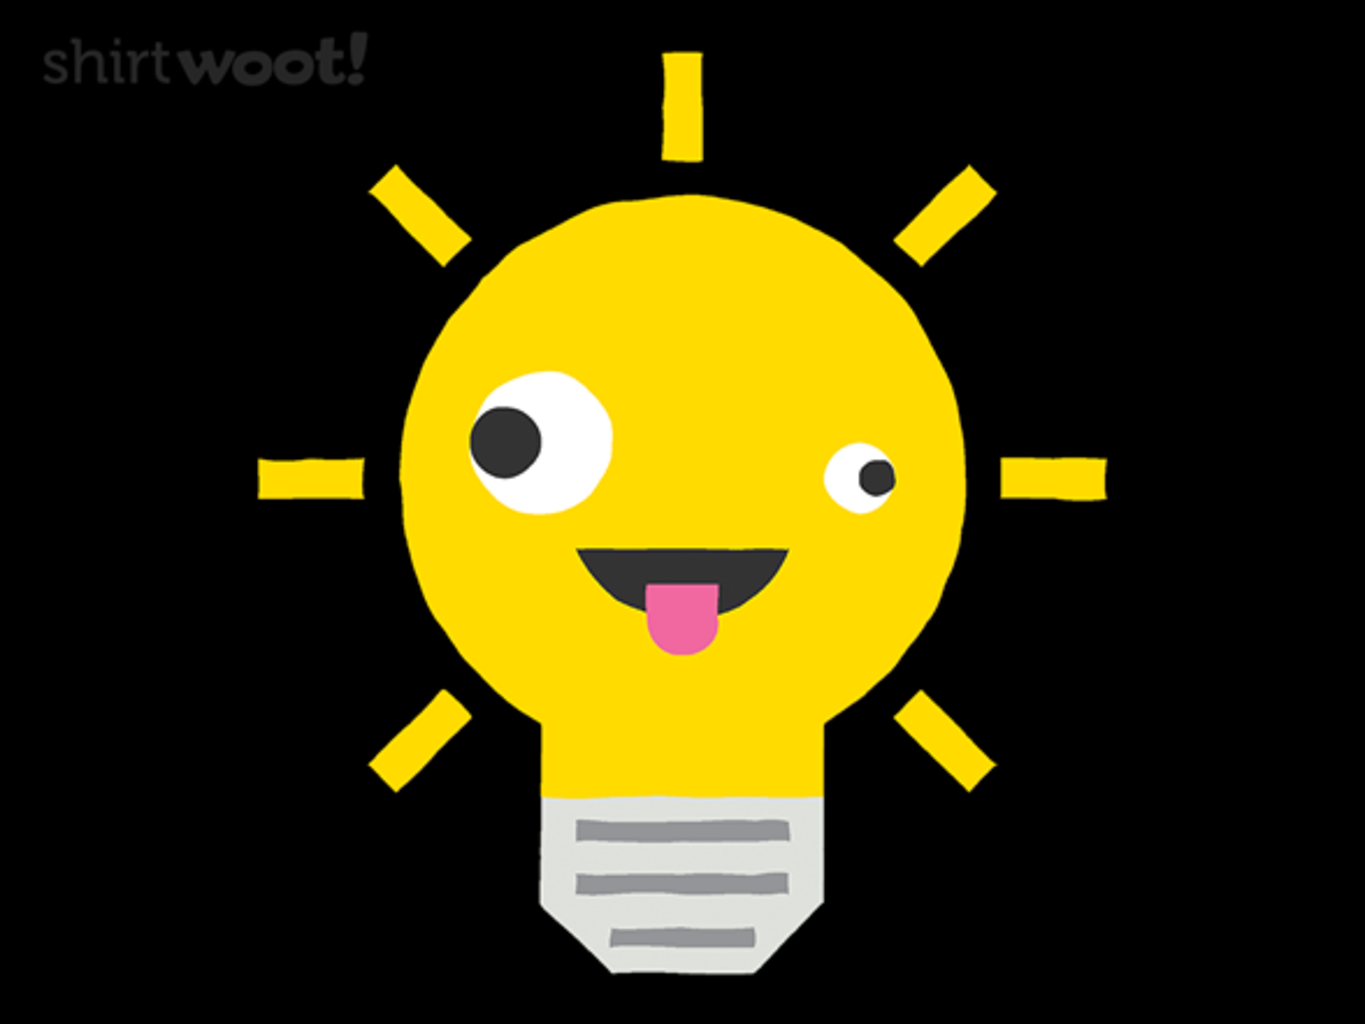 Woot!: Not the Brightest Bulb